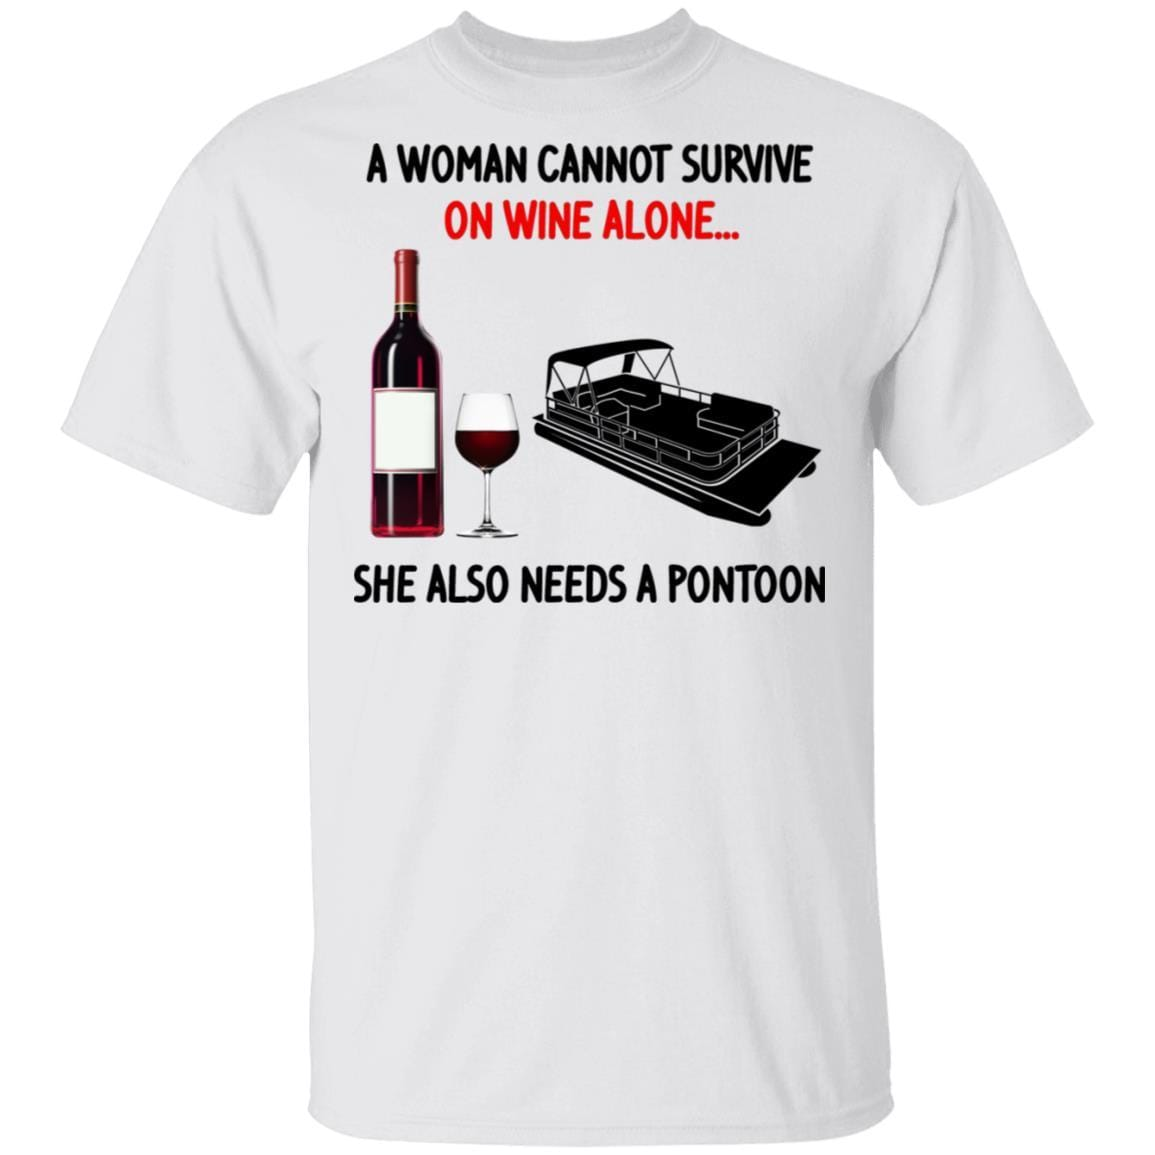 A Woman Cannot Survive On Wine Alone She Also Needs A Pontoon T-Shirts, Hoodies 1049-9974-92839303-48300 - Tee Ript